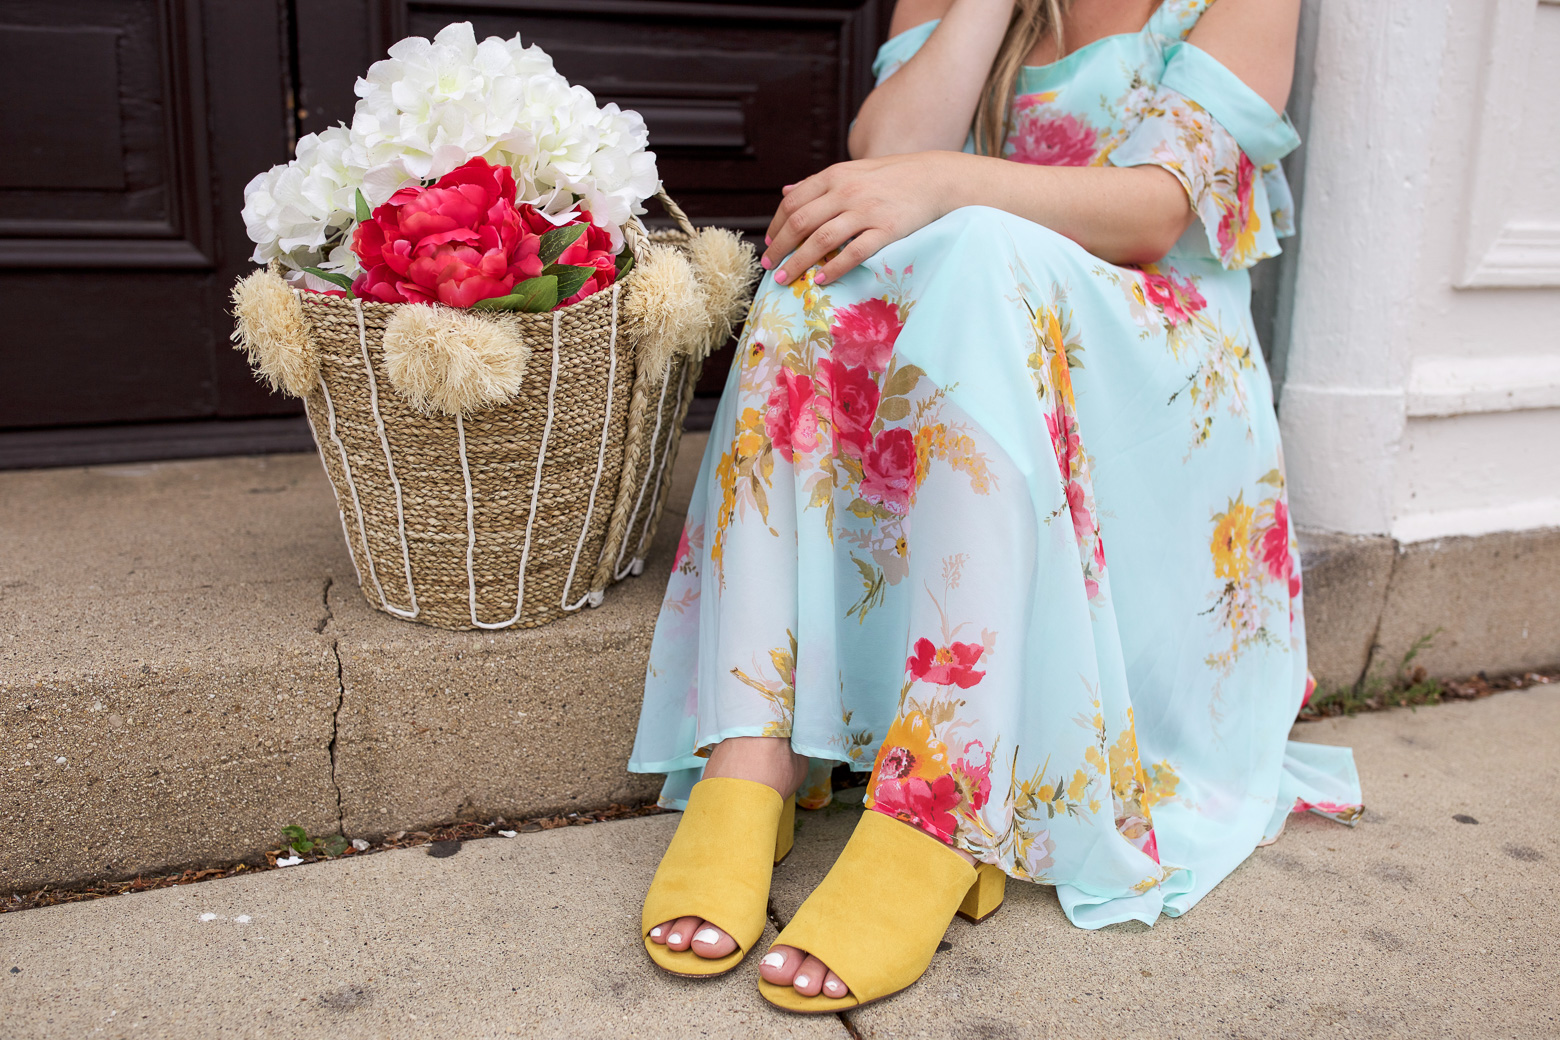 Not sure what to wear to a baby shower? Chicago fashion blogger Happily Inspired is sharing her favorite baby shower dress outfit under $60.